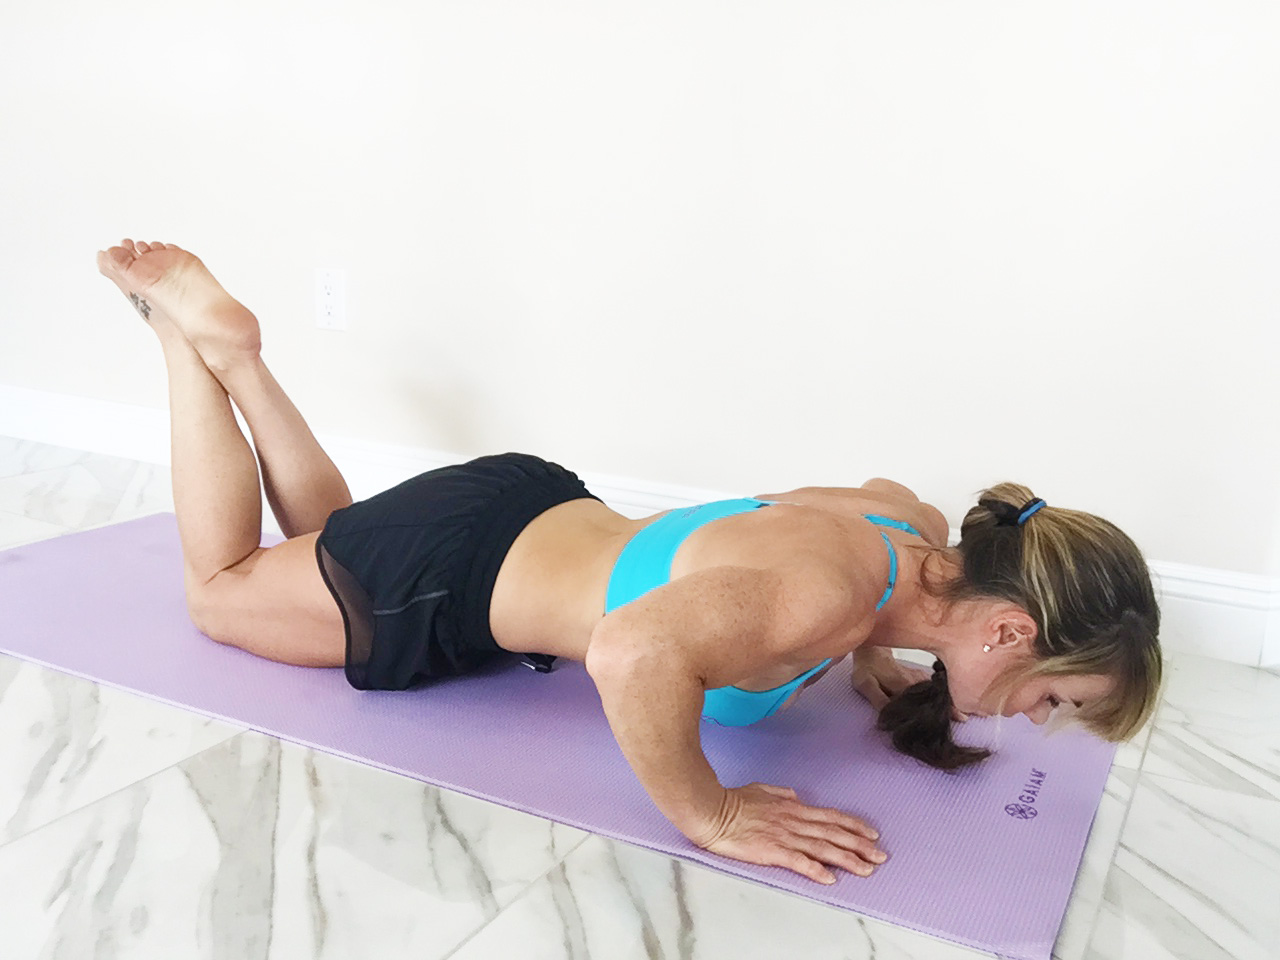 Push ups on your knees is a good place to start without straining your back.